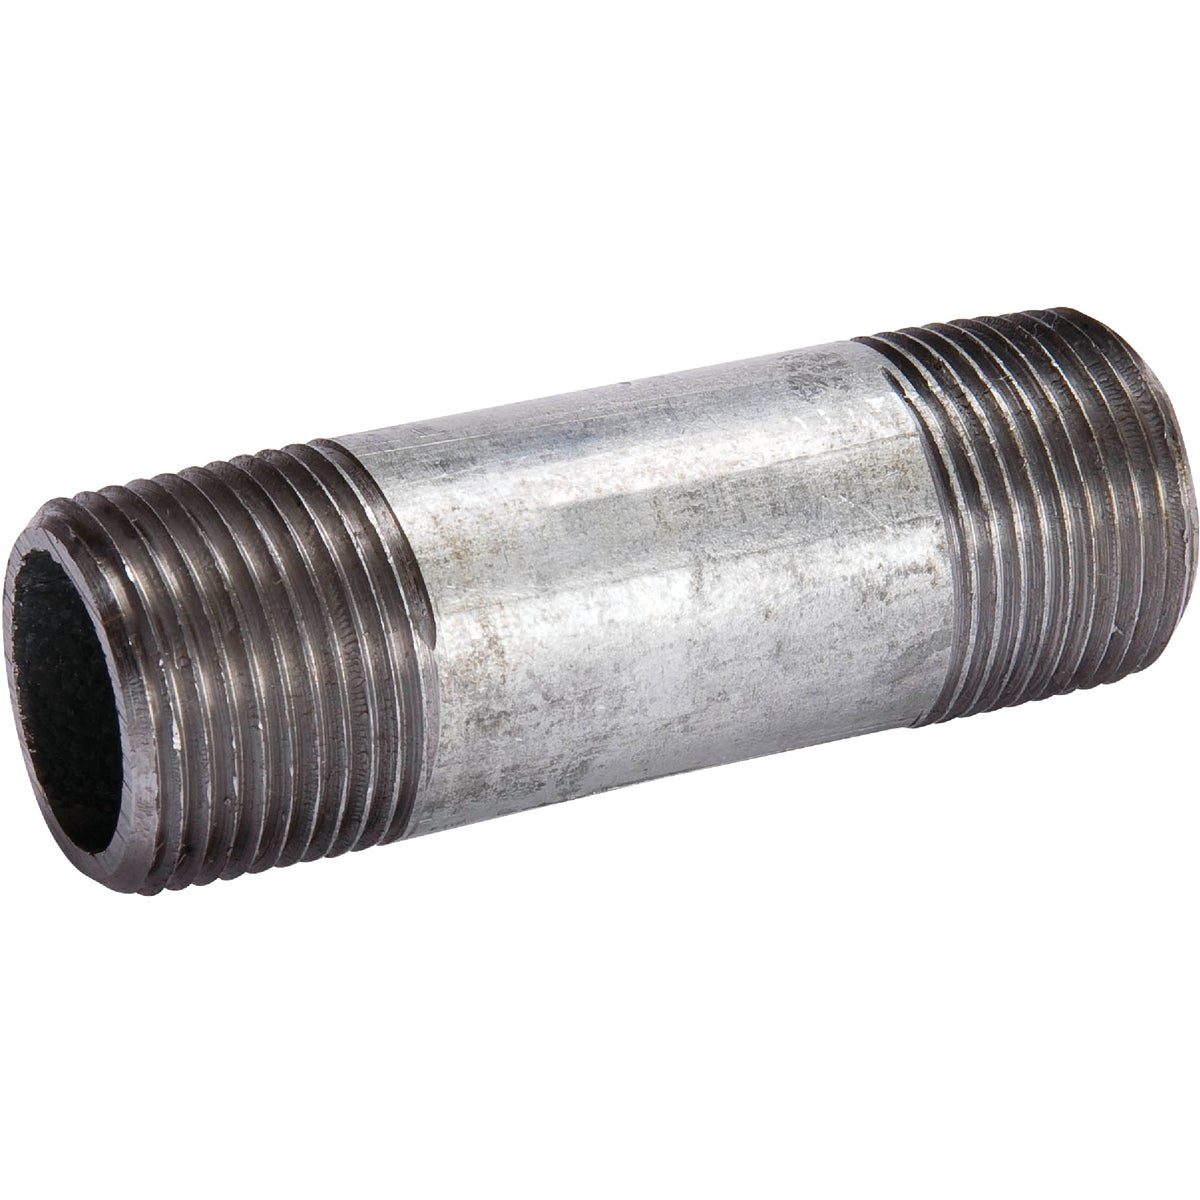 1-1/2X2-1/2 GALV NIPPLE - 10803 by Southland Pipe Nippl